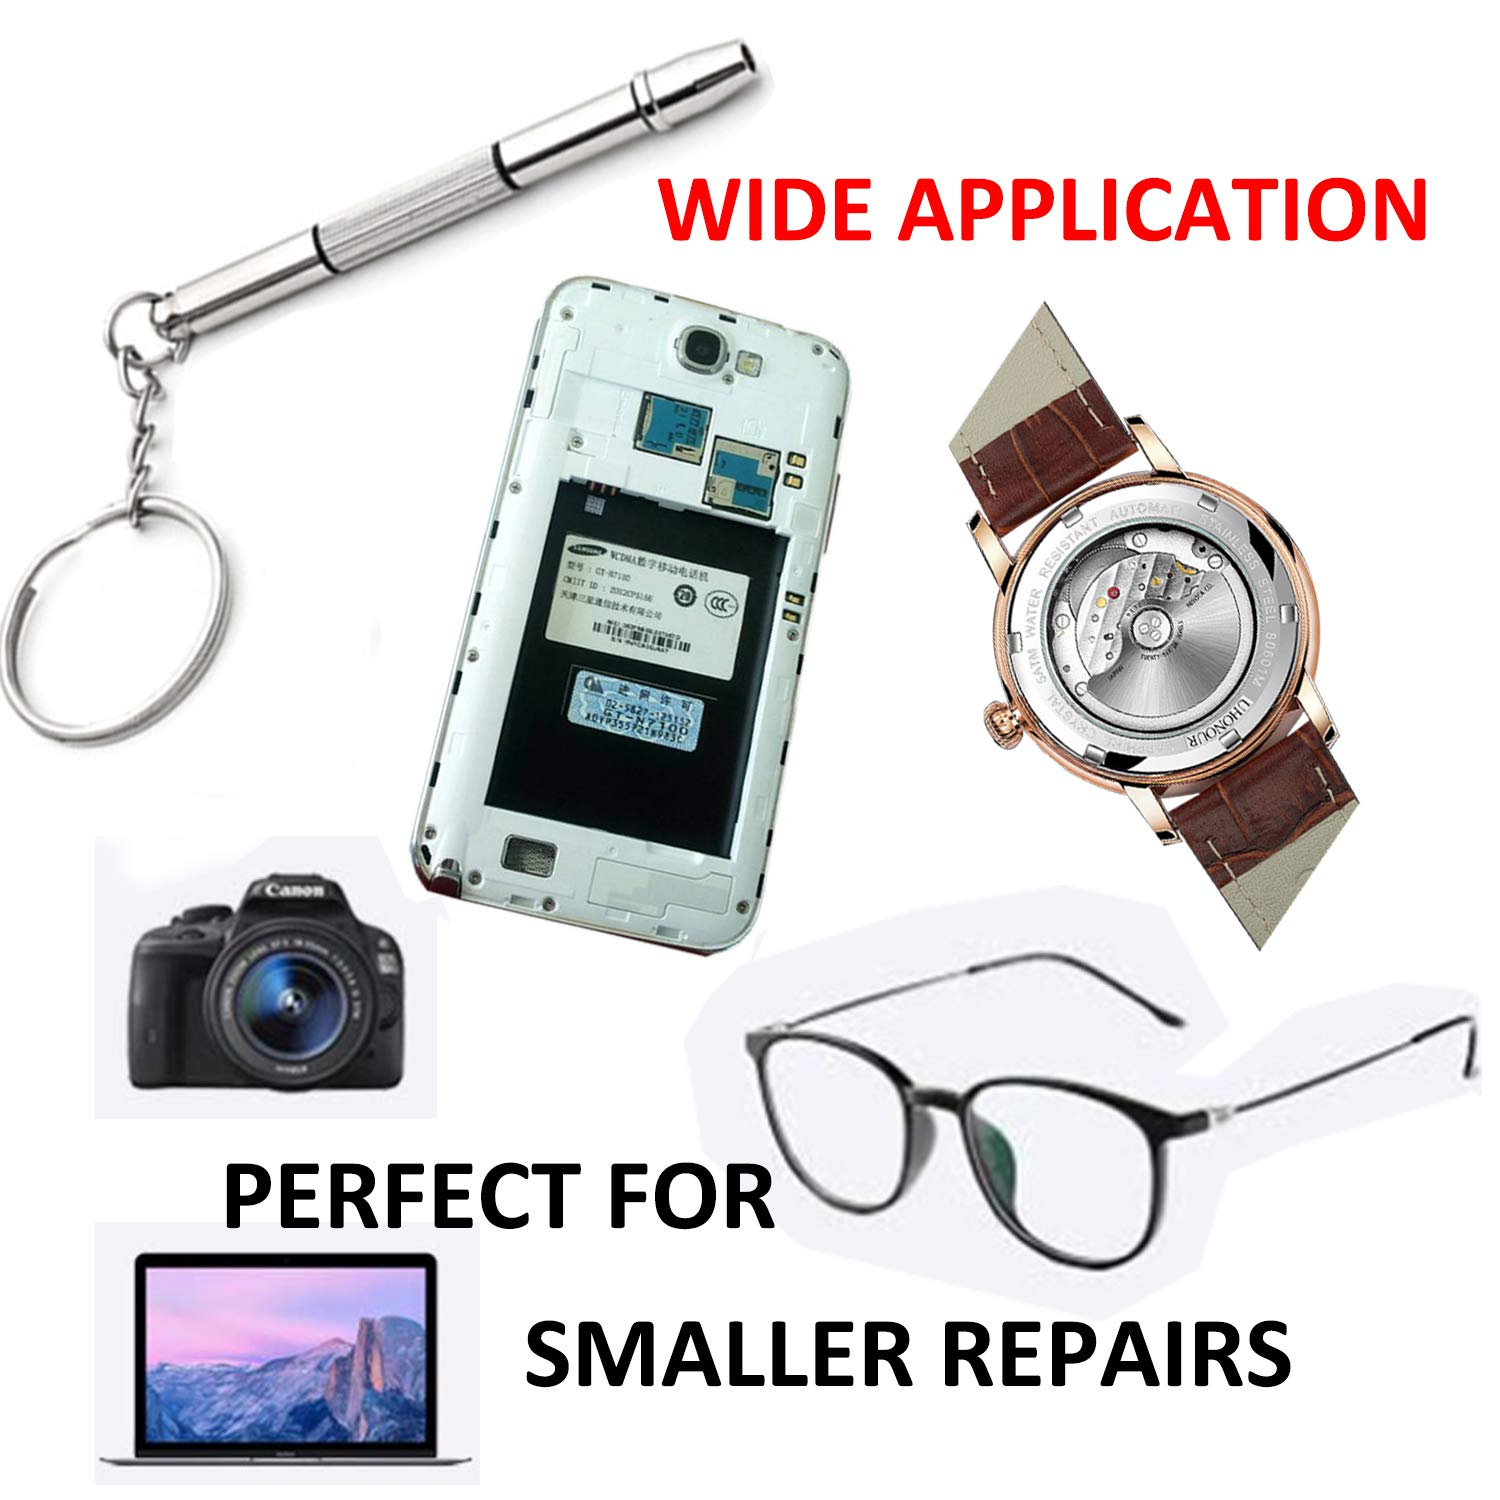 Mini 4 in 1 Screwdriver Keychain, Hotetey 5 Pack Stainless Steel Precision Screwdriver Keyring Repair Tool for Eyeglass Sunglasses Watch Phone Electronics